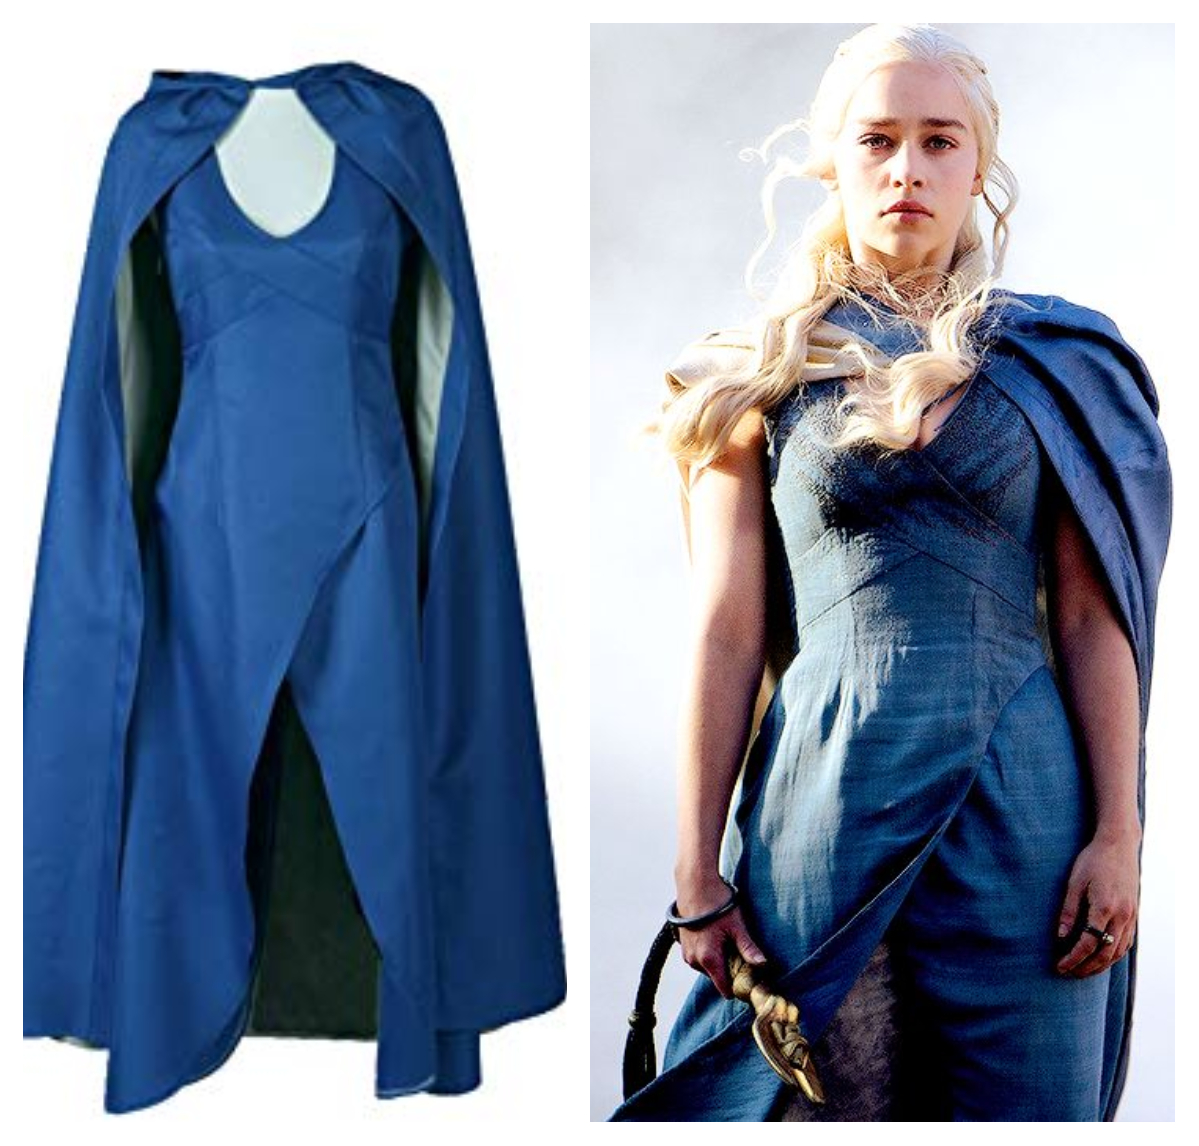 geek costume ideas Daenerys Targaryen dress and wig